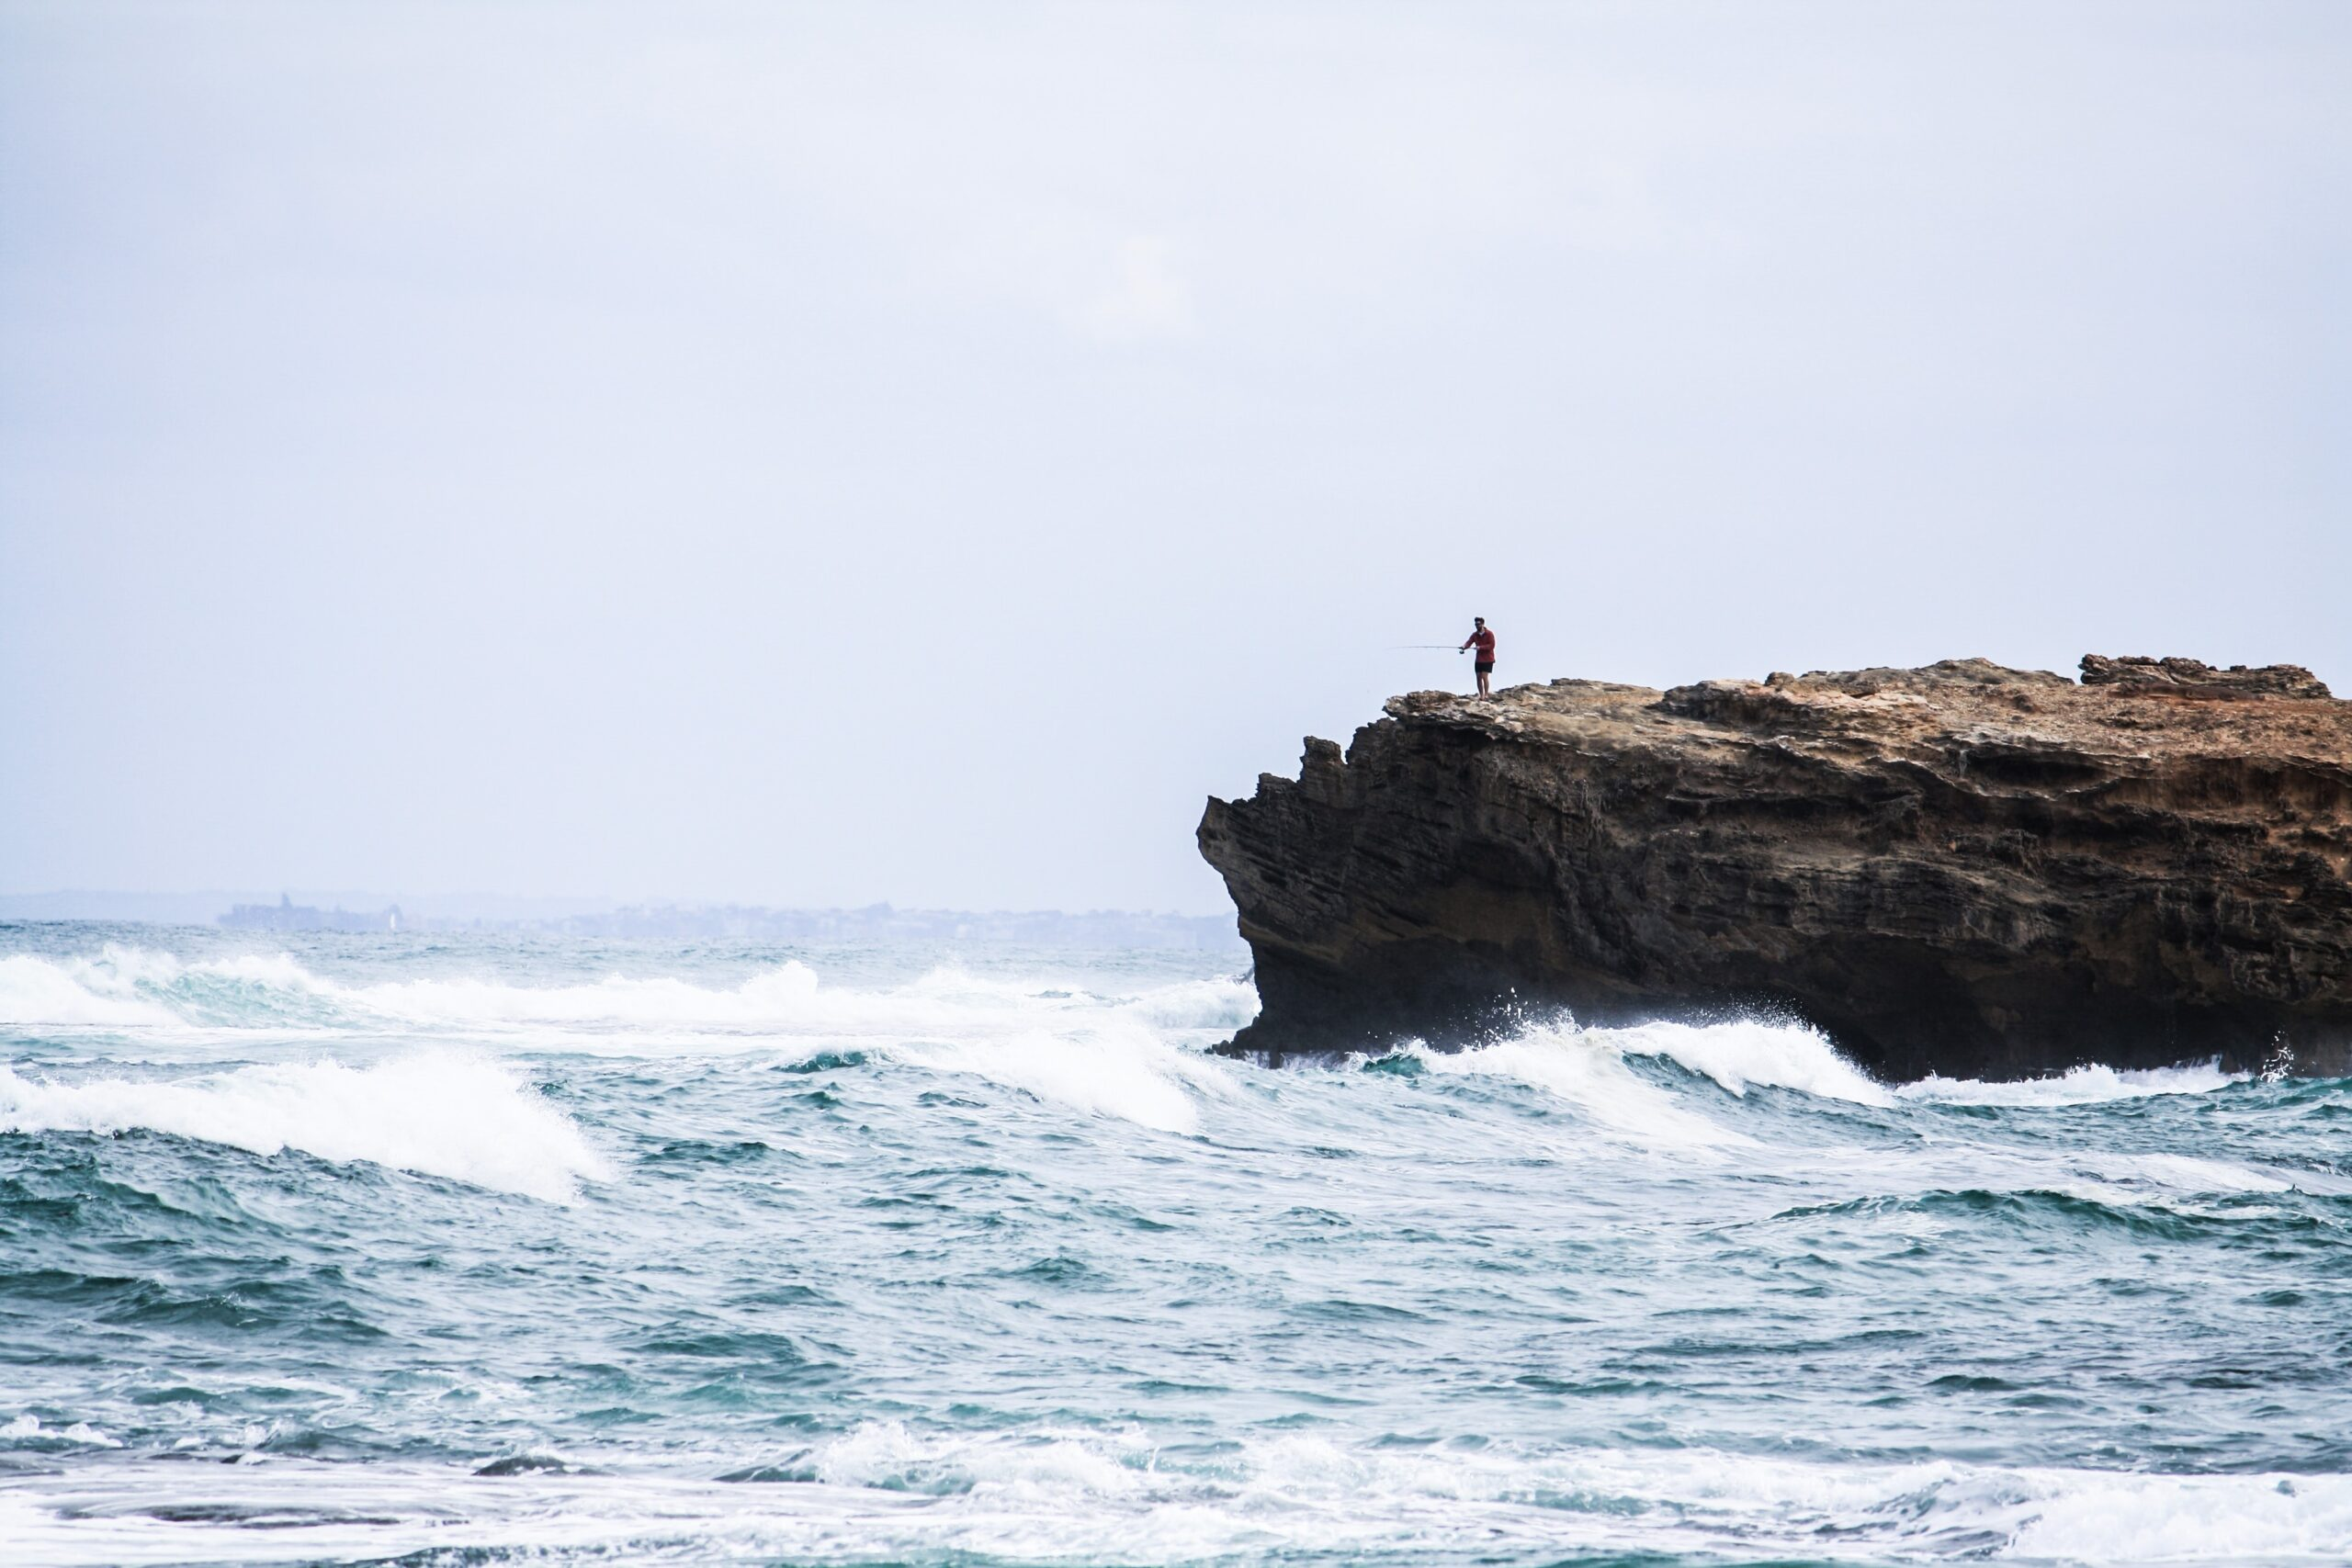 Solo human casts fishing line into sea from a rocky cliff